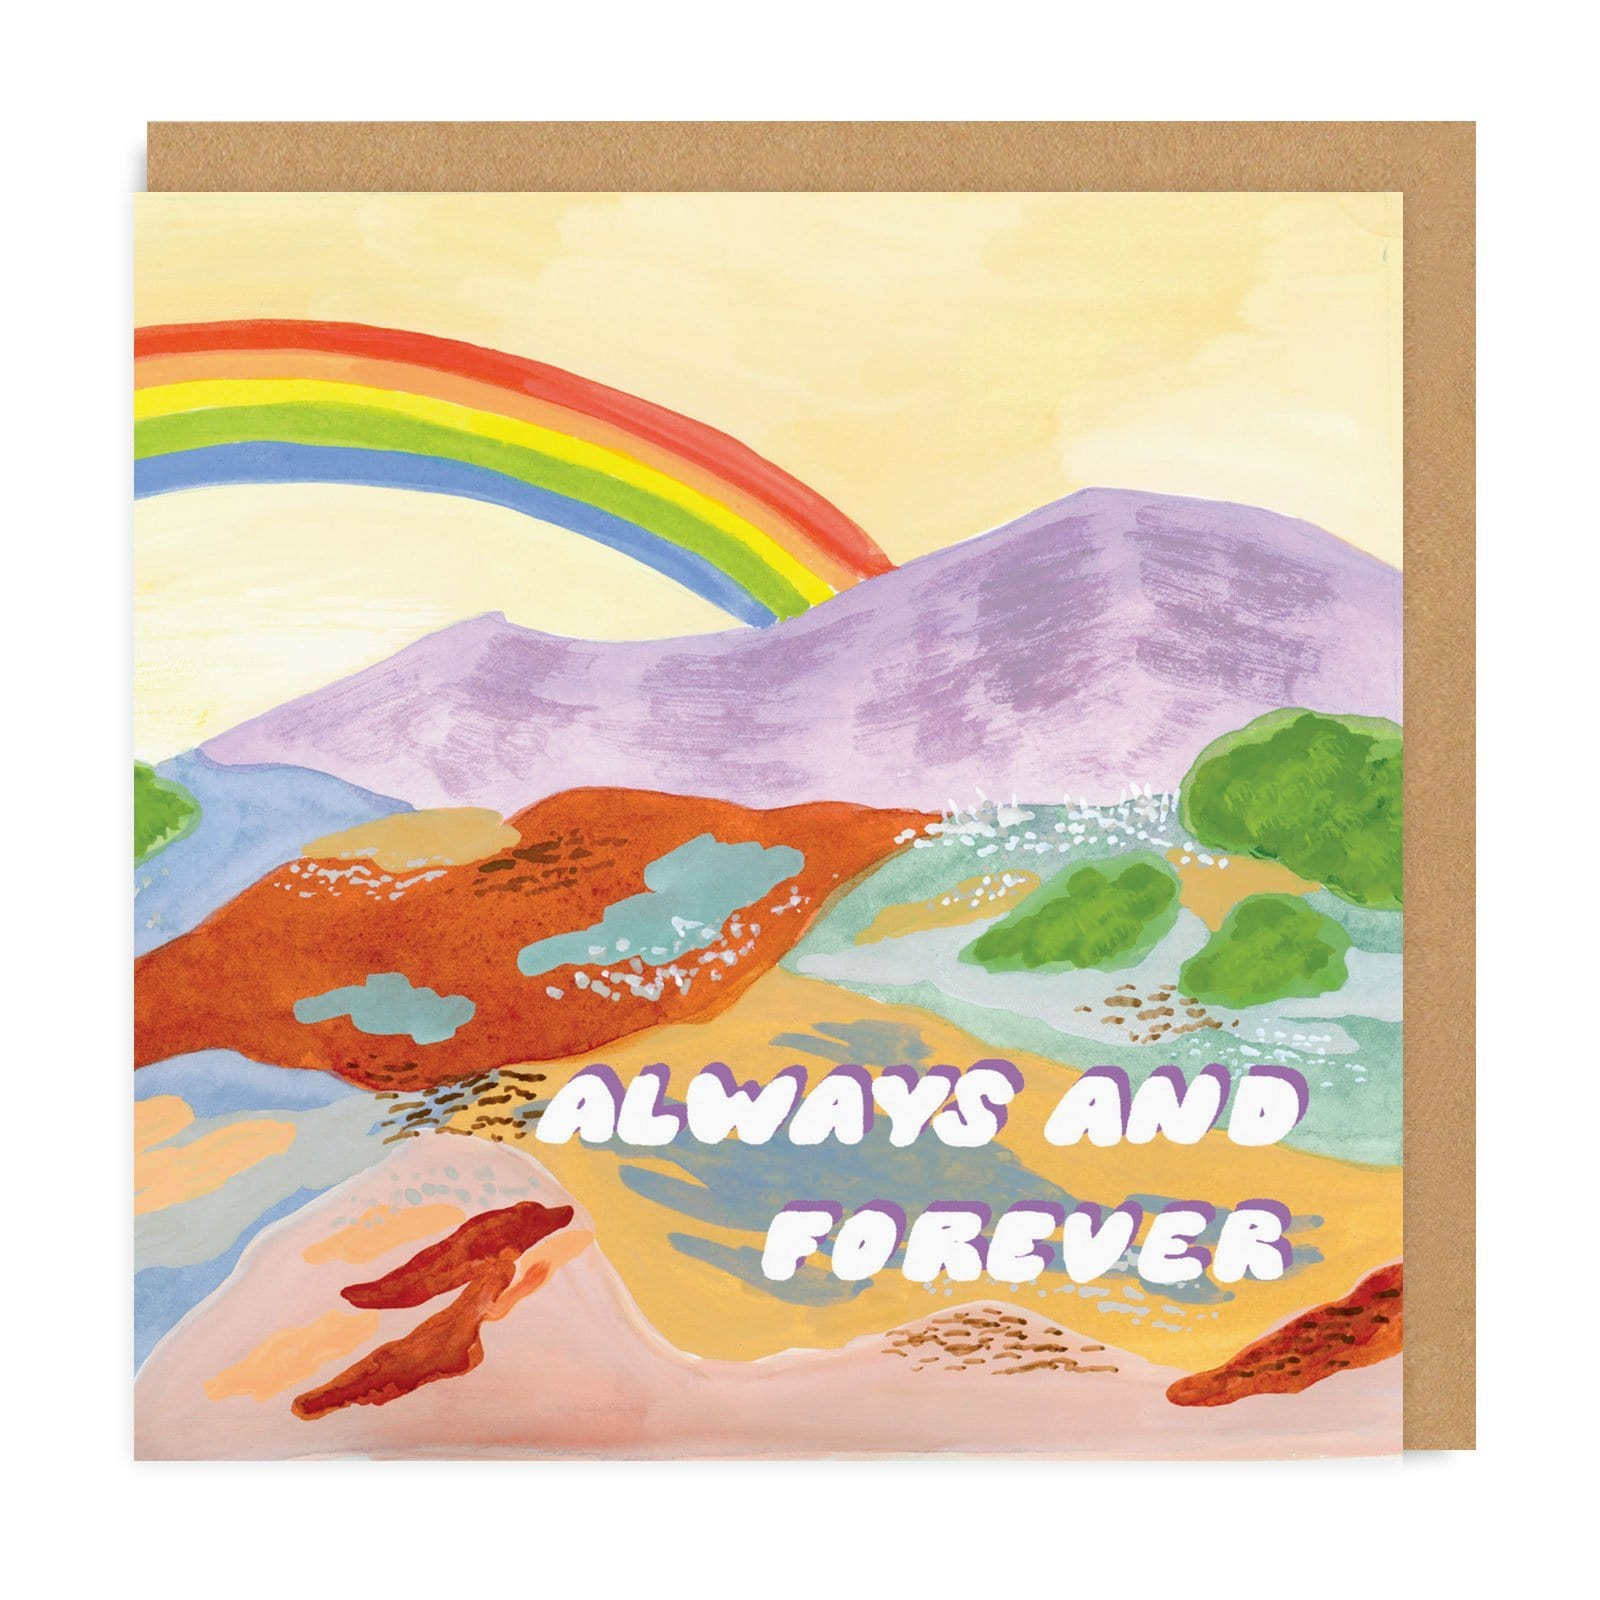 Square colourful card with mountains and rainbow painted on, with Always and Forever text in retro font